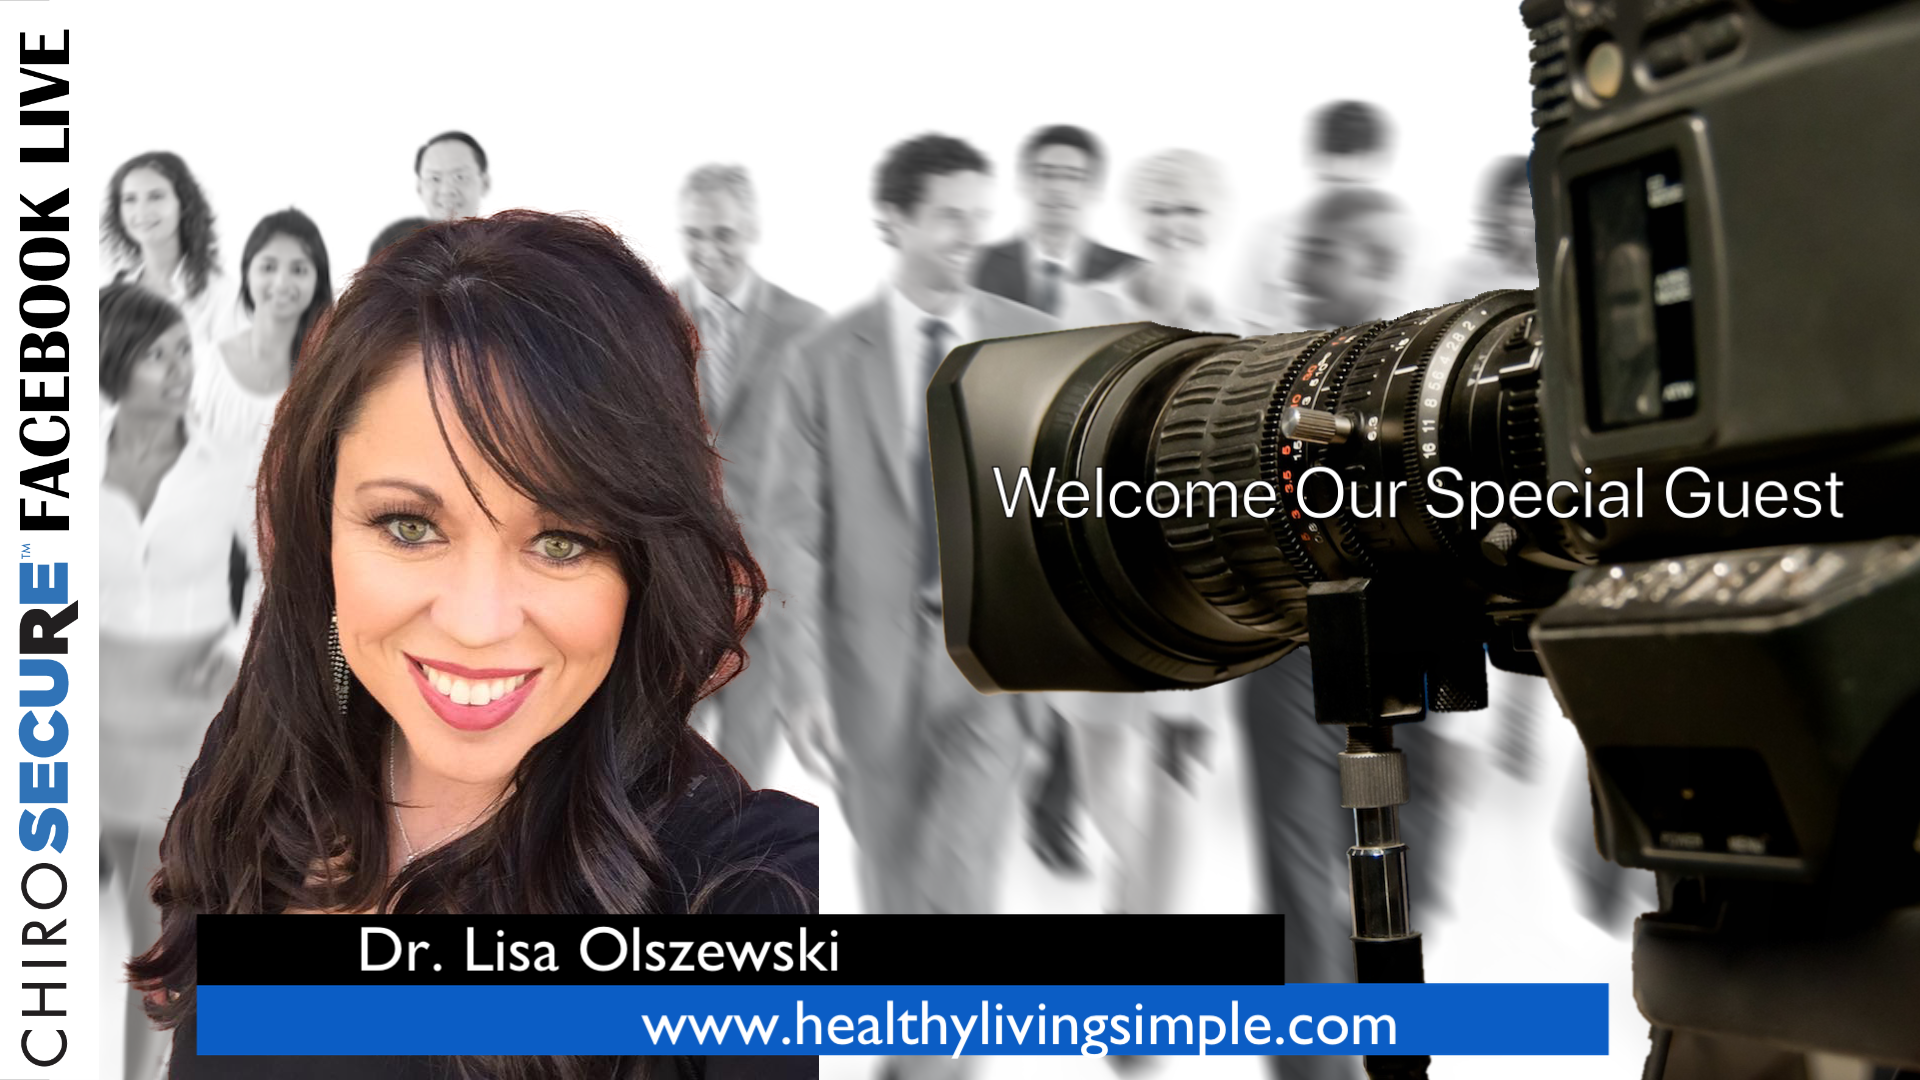 Dr. Olszewski of Healthy Living Simple